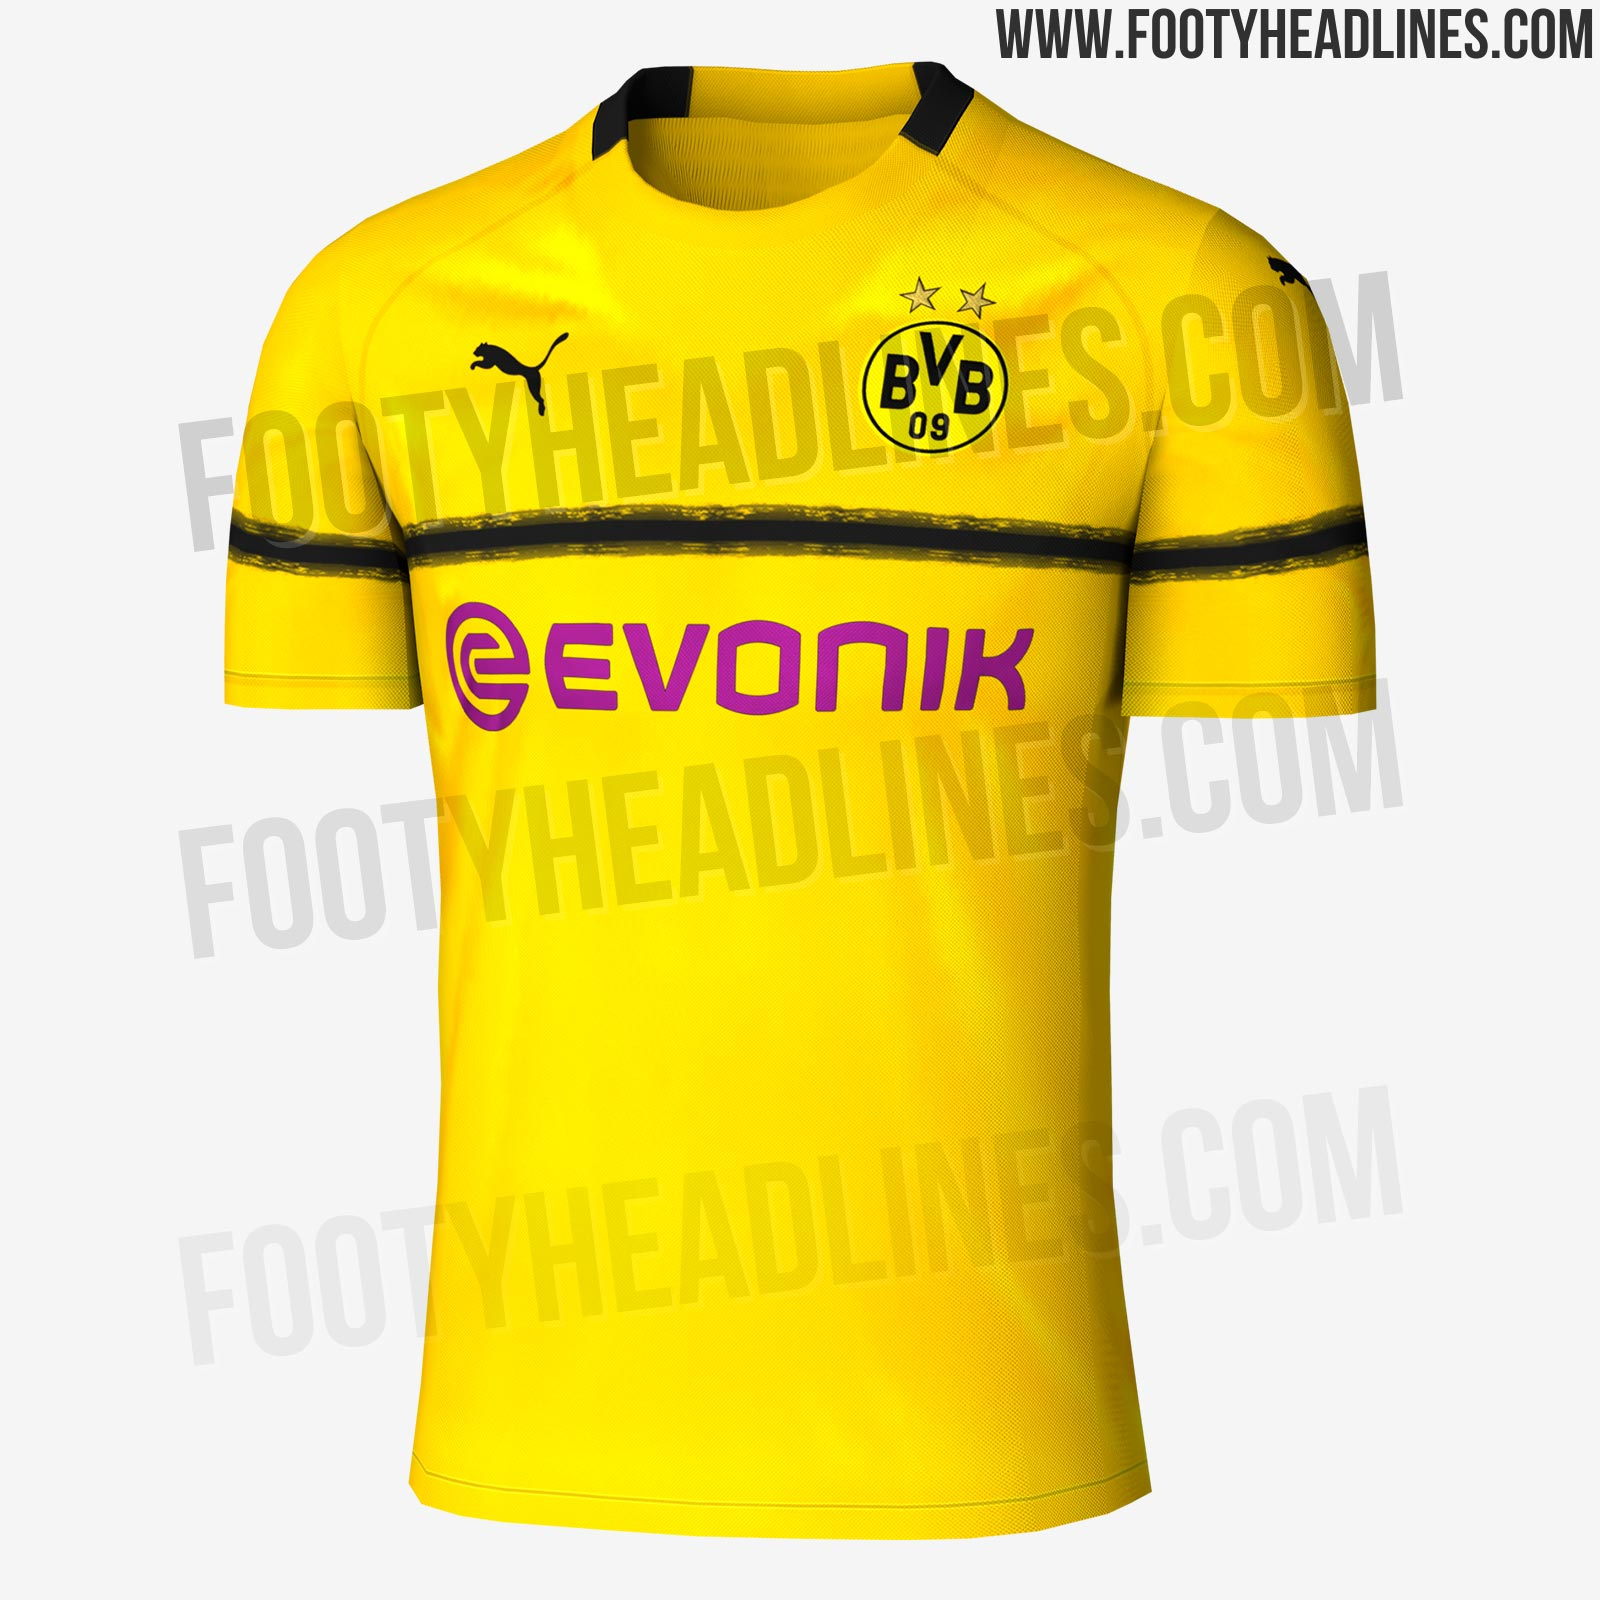 43b4526daf2 Dortmund 18-19 Champions League Kit Leaked